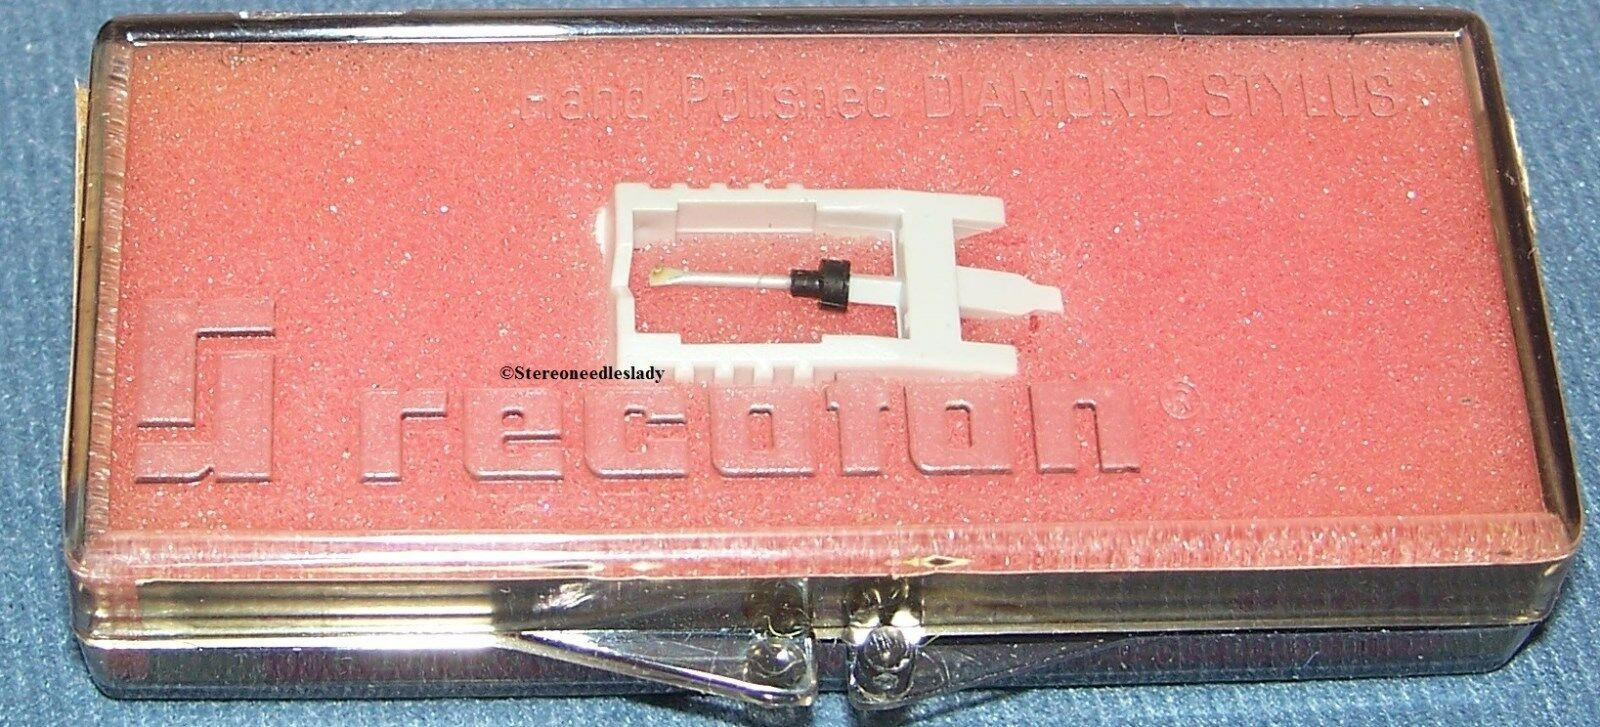 STEREO RECORD PLAYER TURNTABLE NEEDLE for Panasonic EPS-25 EPC-42STAB2D 627-D7